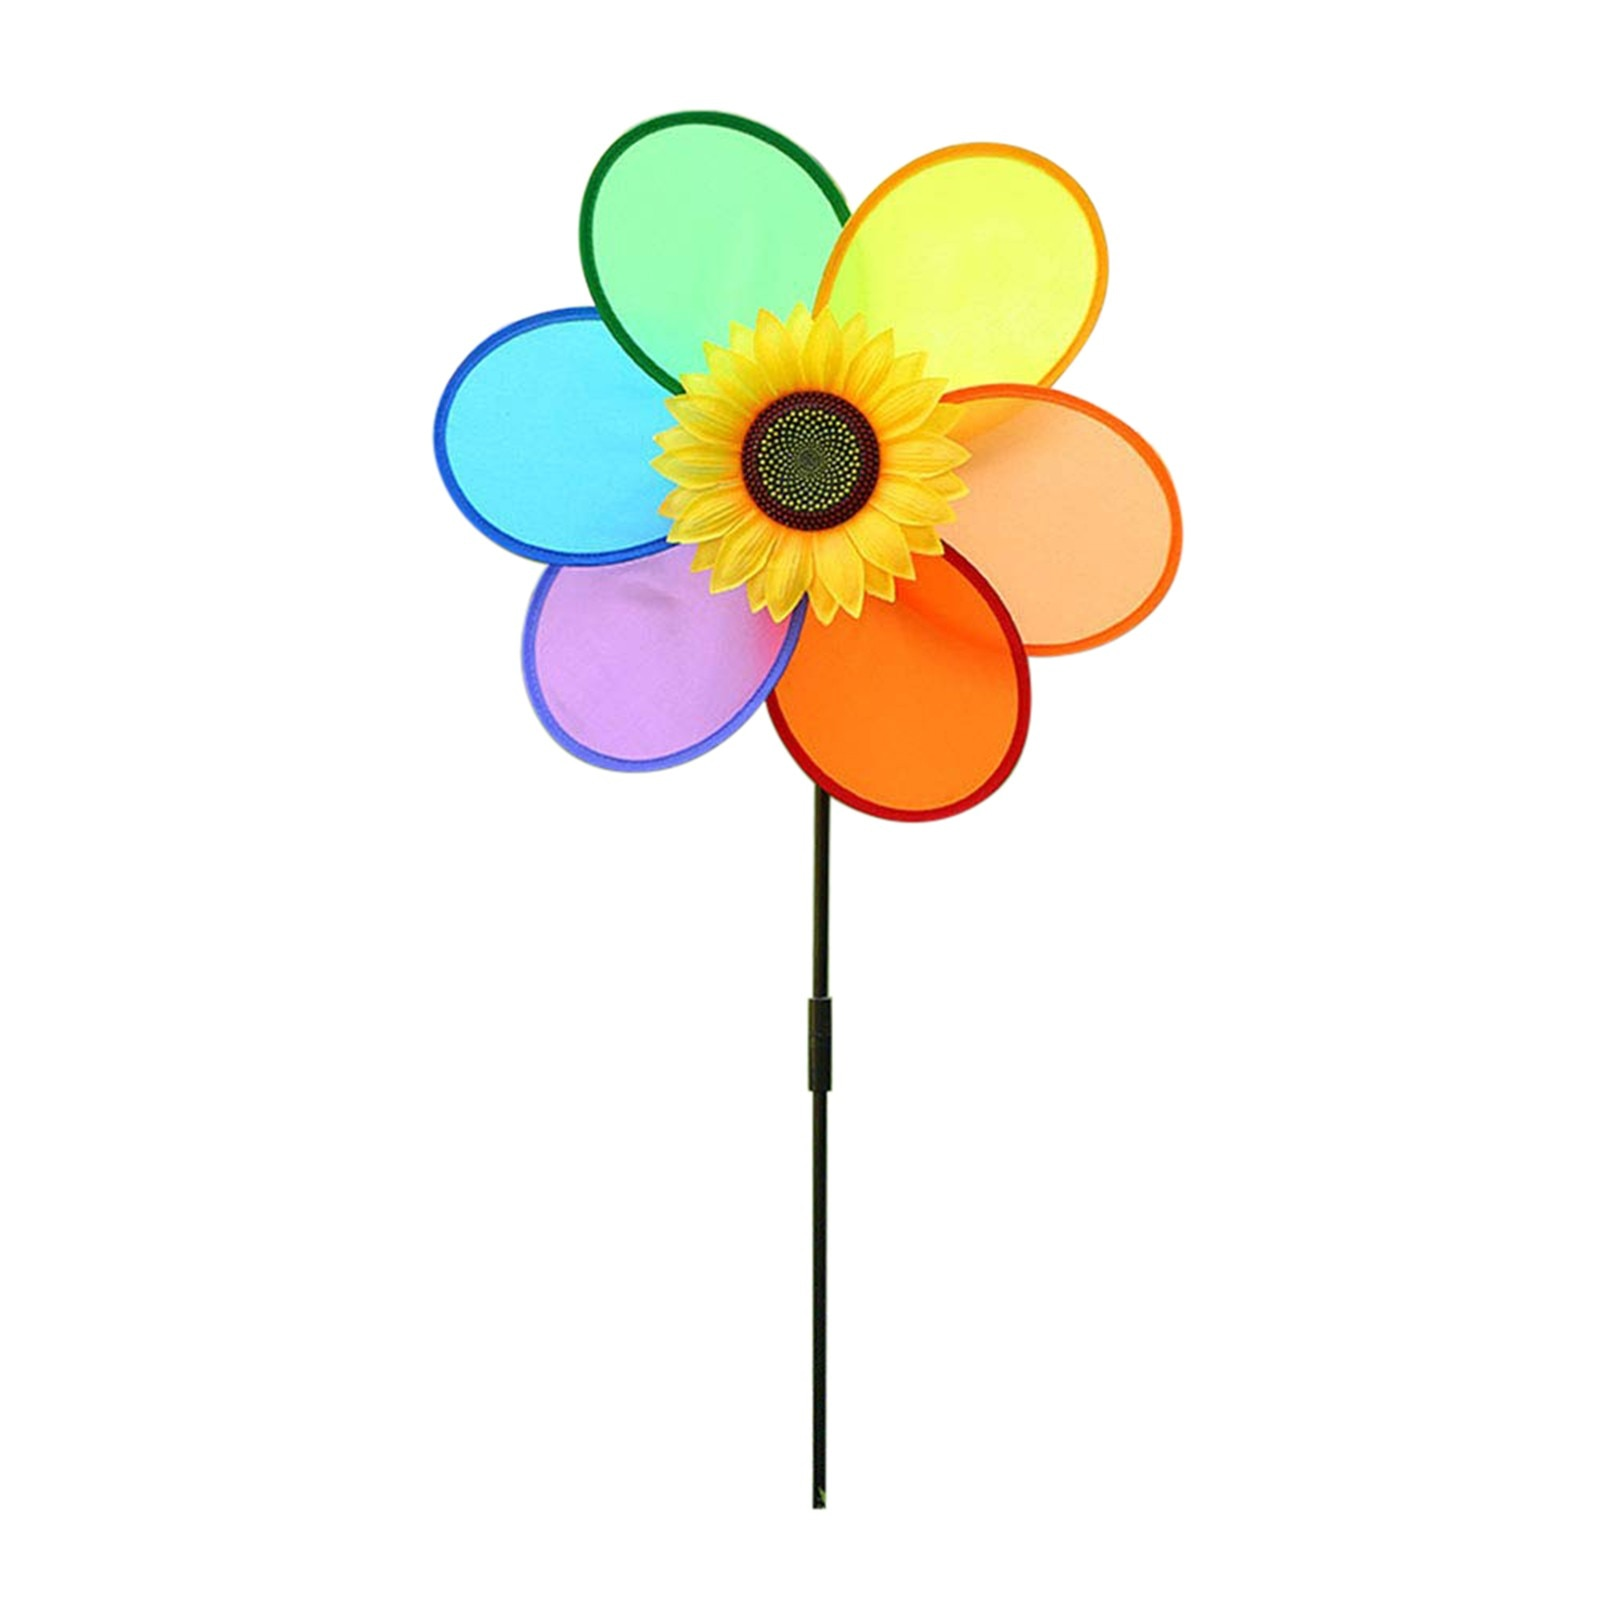 Wind Spinners Outdoor Decoration Windmill Spinner Rainbow-flower Yard Garden Wind-home Toy Easy Removal Diy Multicolour Lawn